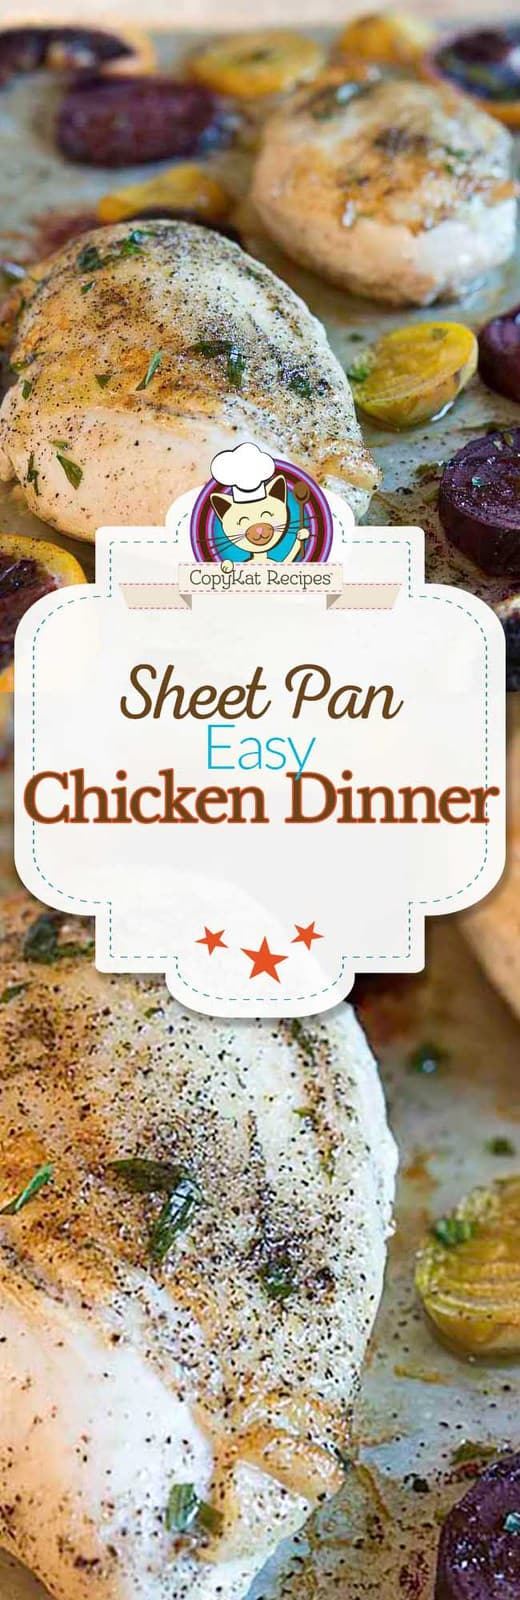 You can prepare this easy to make Sheet Pan Dinner with Chicken and roasted vegetables in about 30 minutes.